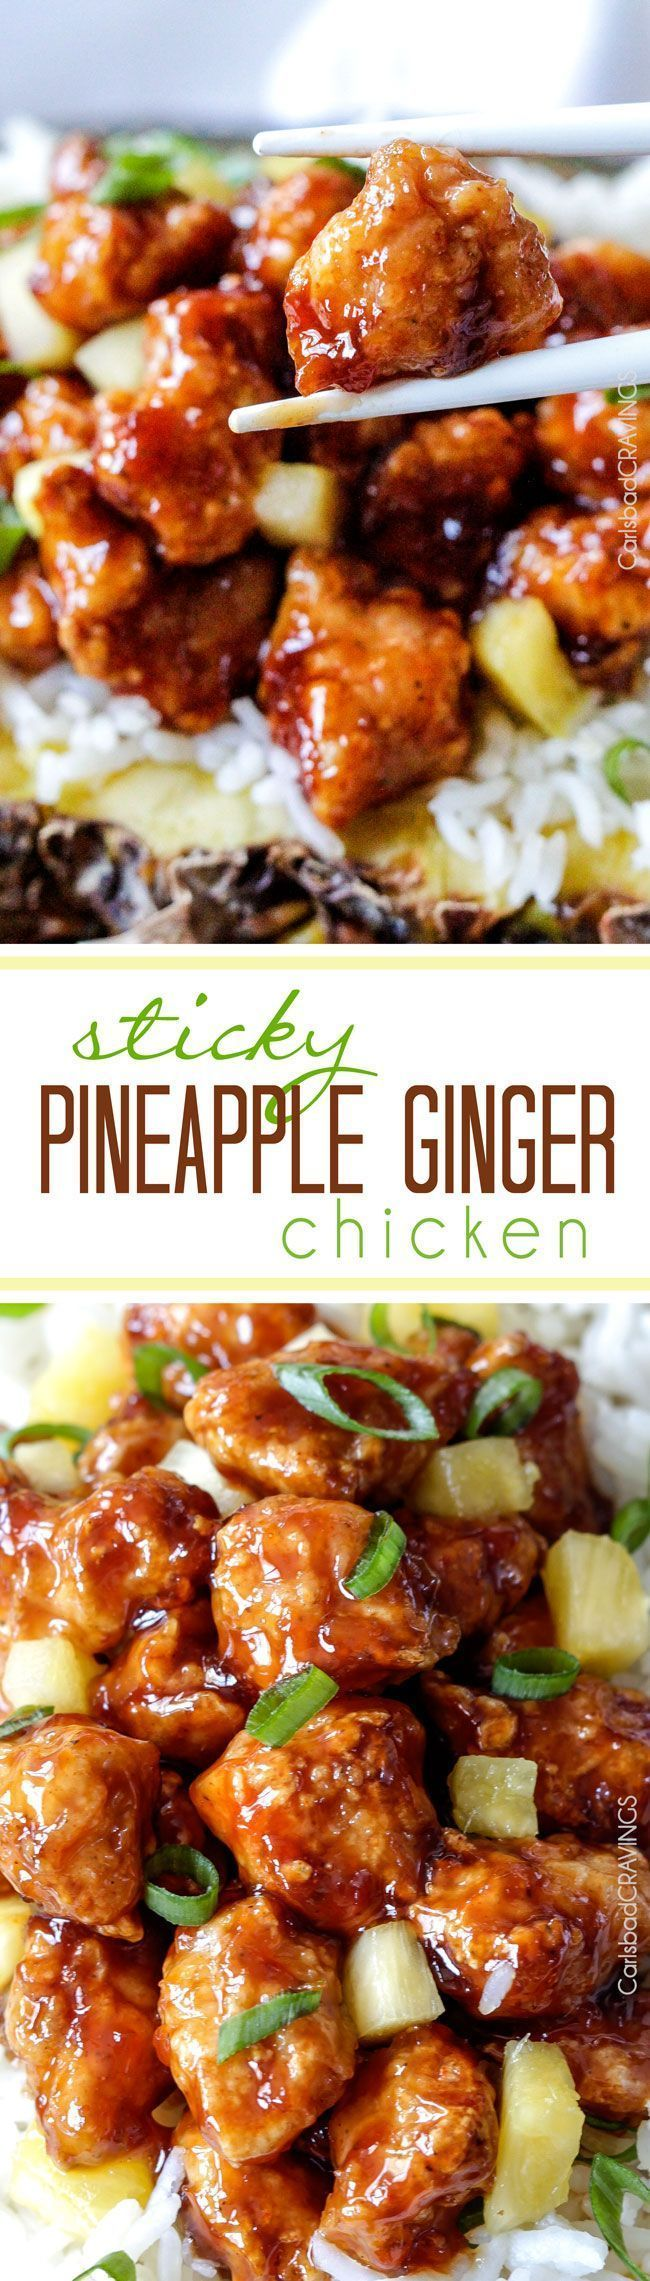 Baked or stir fried Pineapple Ginger Chicken smothered in the most crazy delicious sweet pineapple sauce with a ginger Sriracha kick that is WAY better than tak